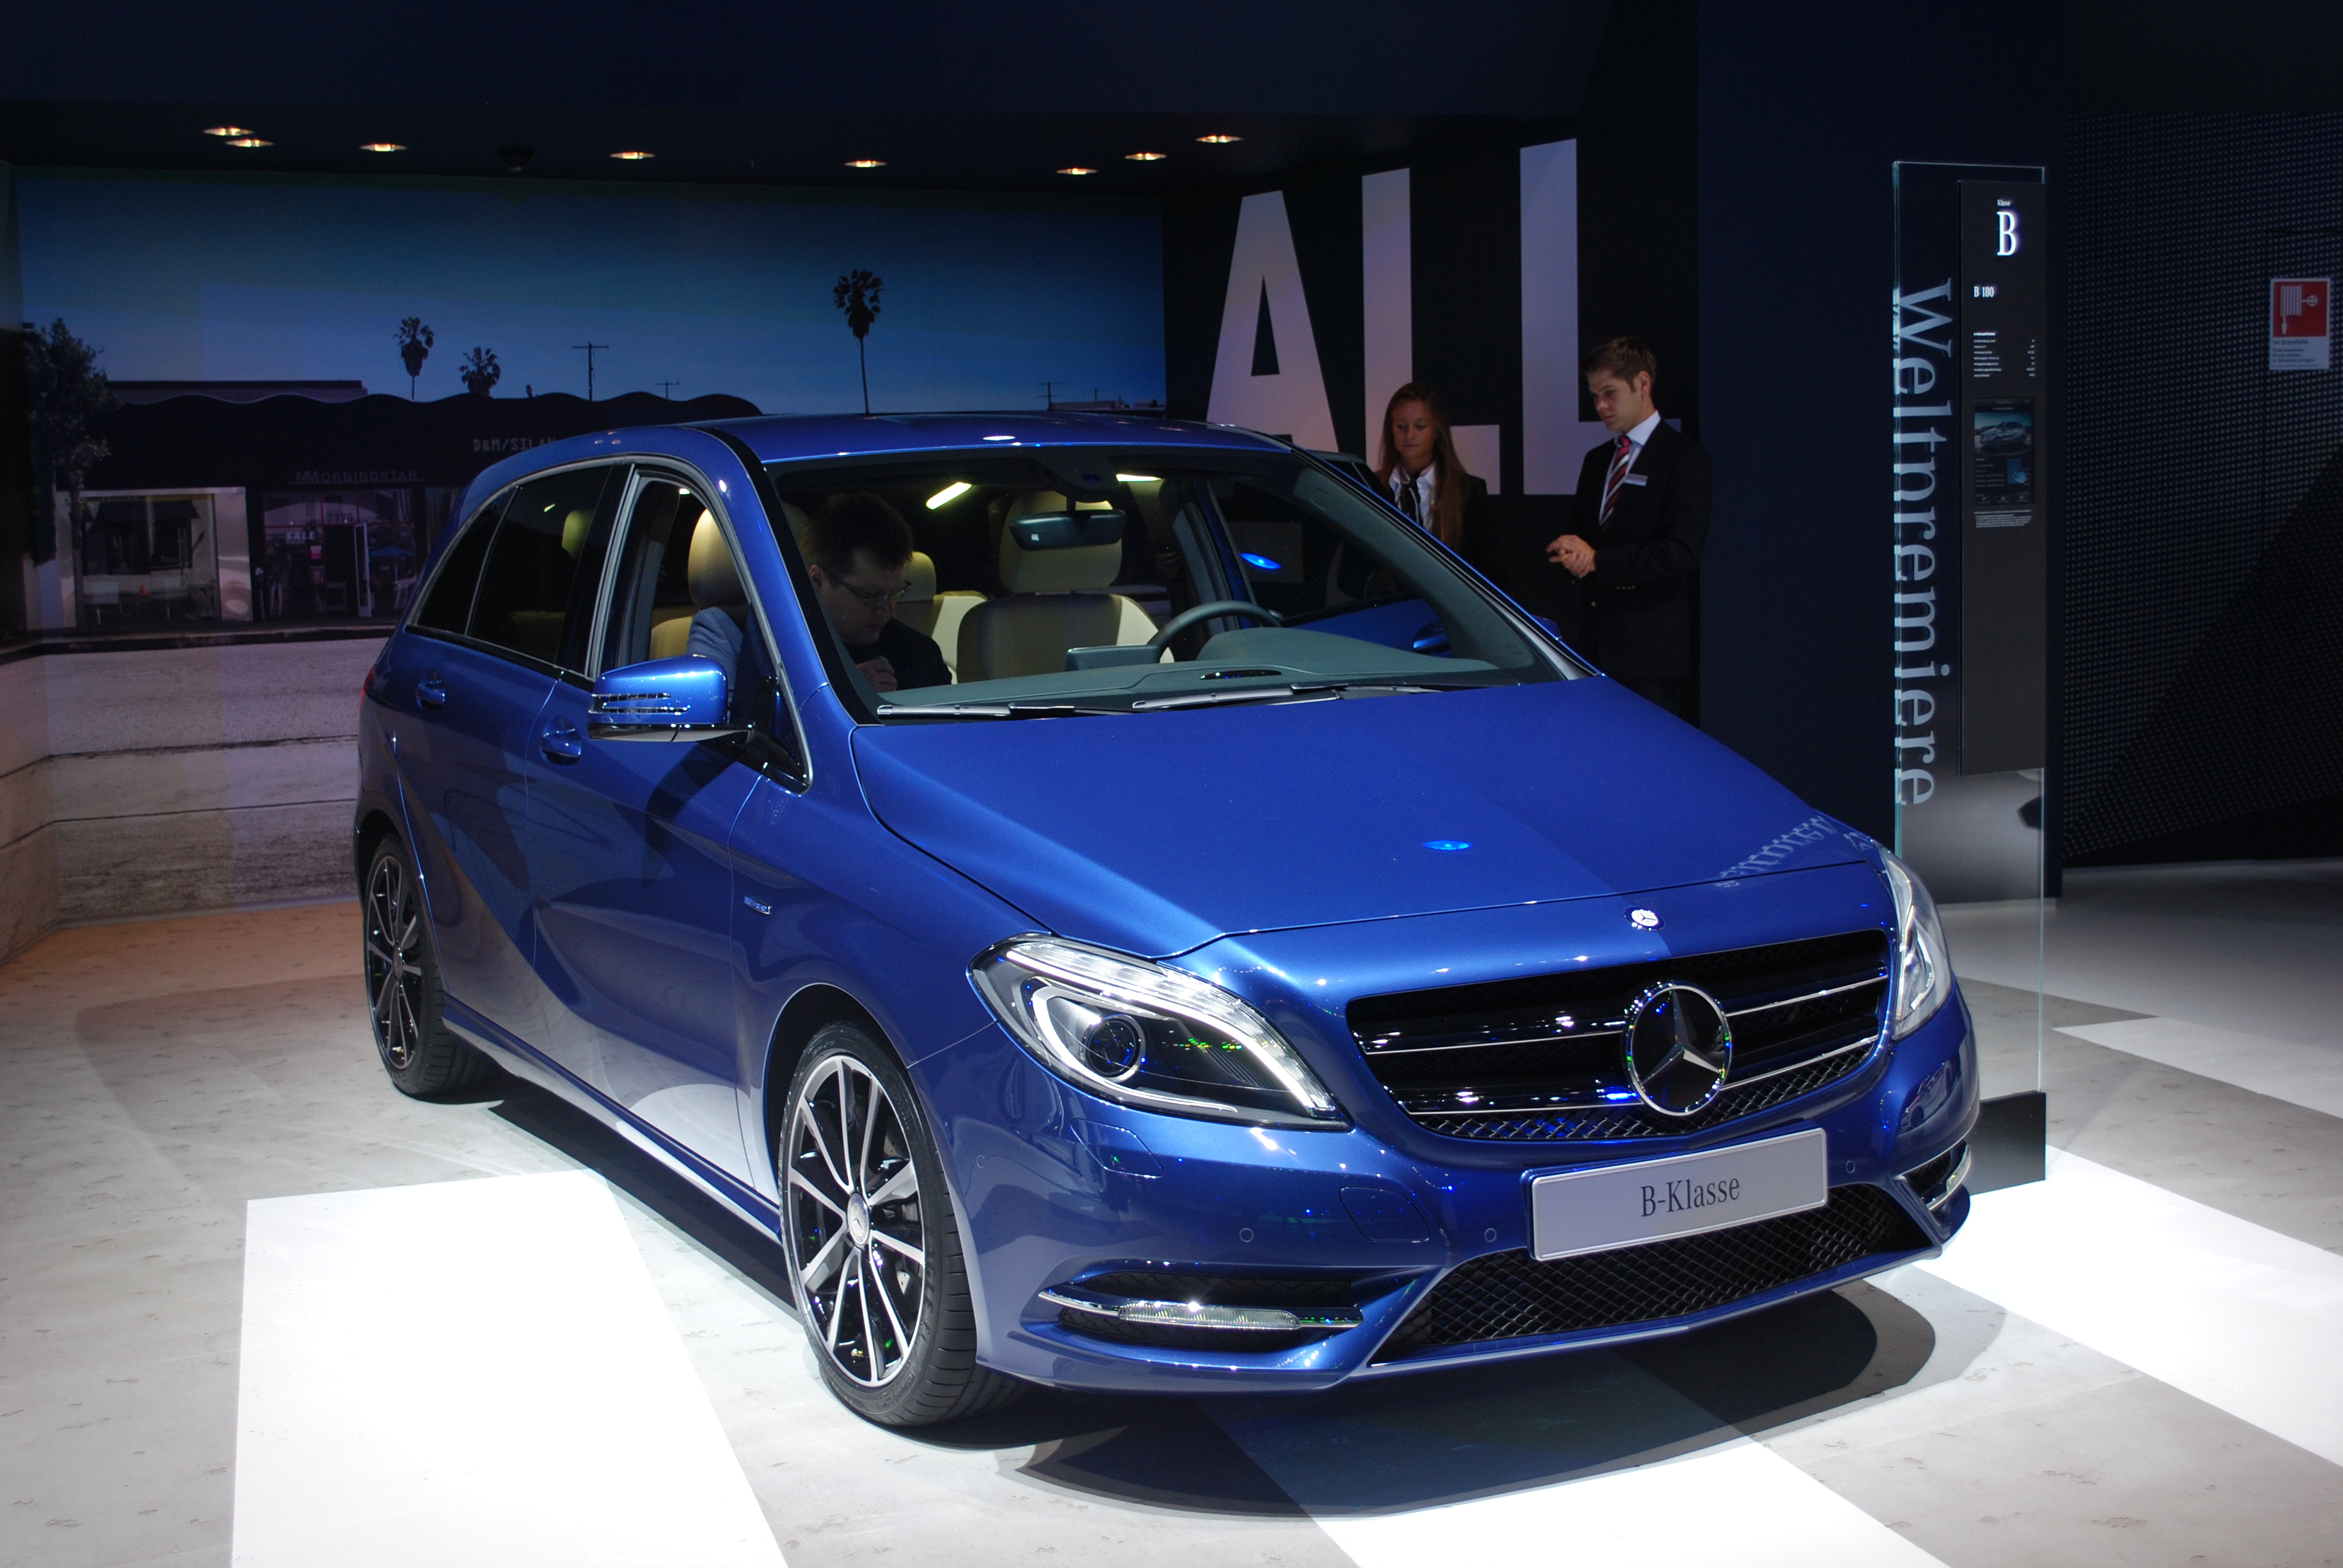 File:Mercedes-Benz B-Class.jpg - Wikipedia, the free encyclopedia